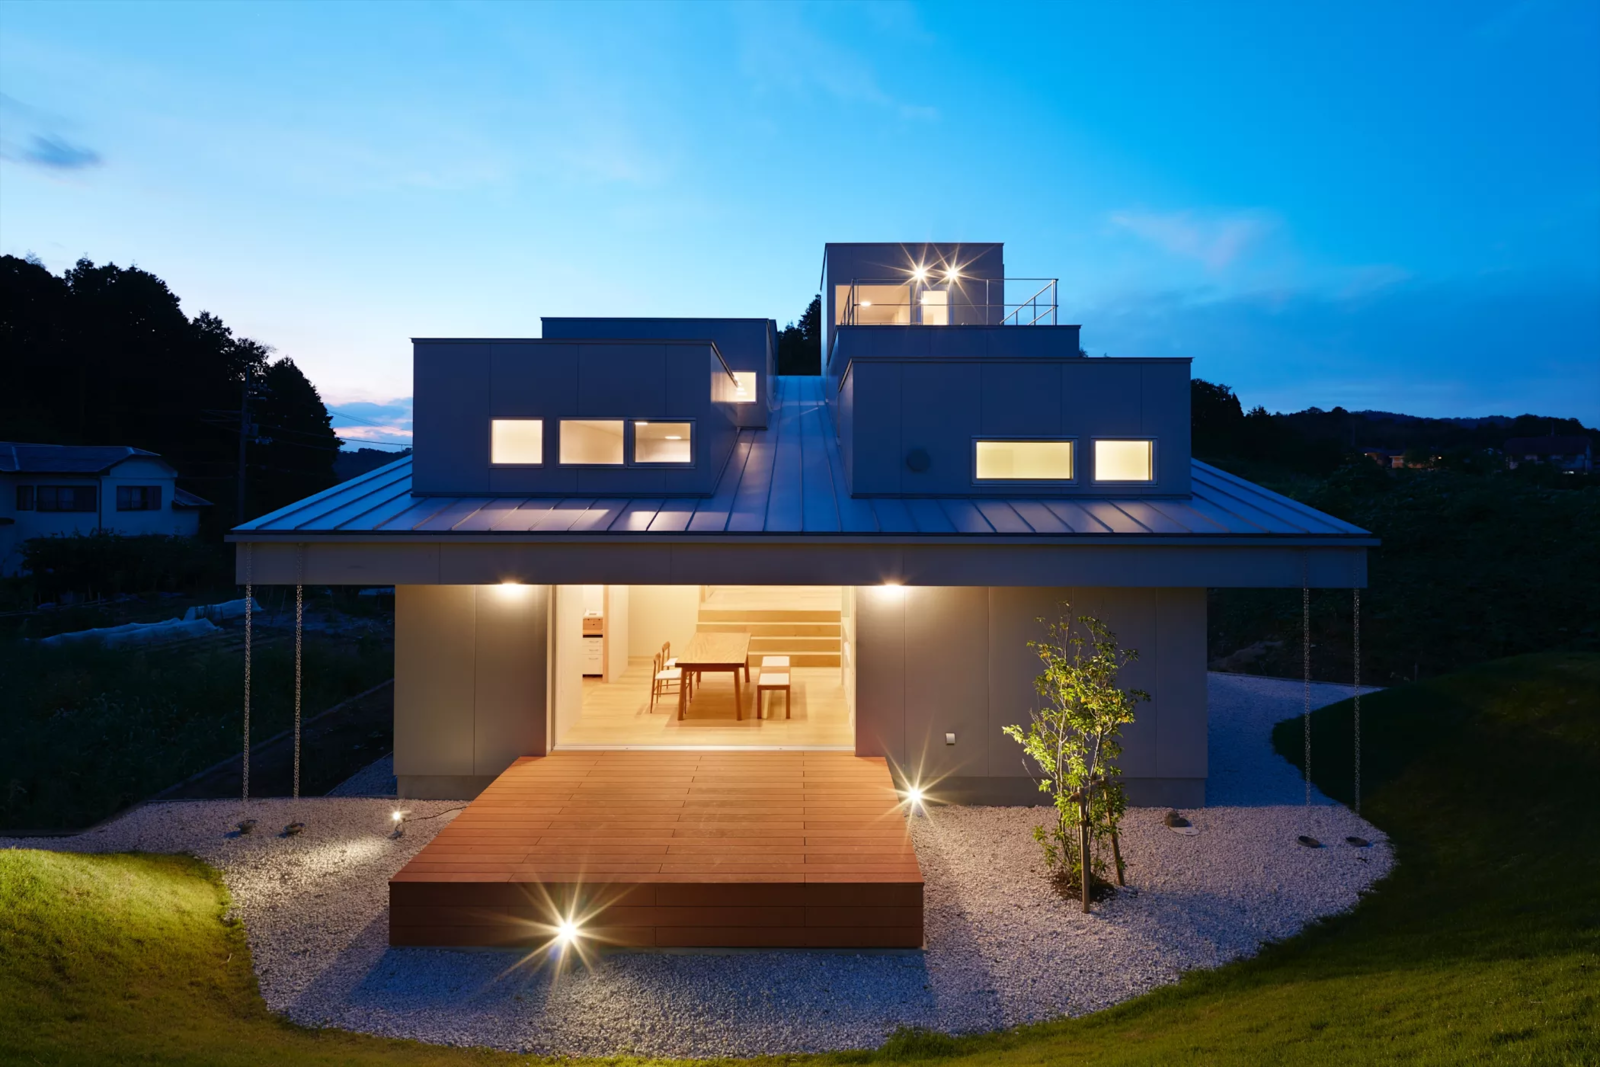 Photo 2 of 6 in House in Tokushima by Fujiwara-Muro Architects